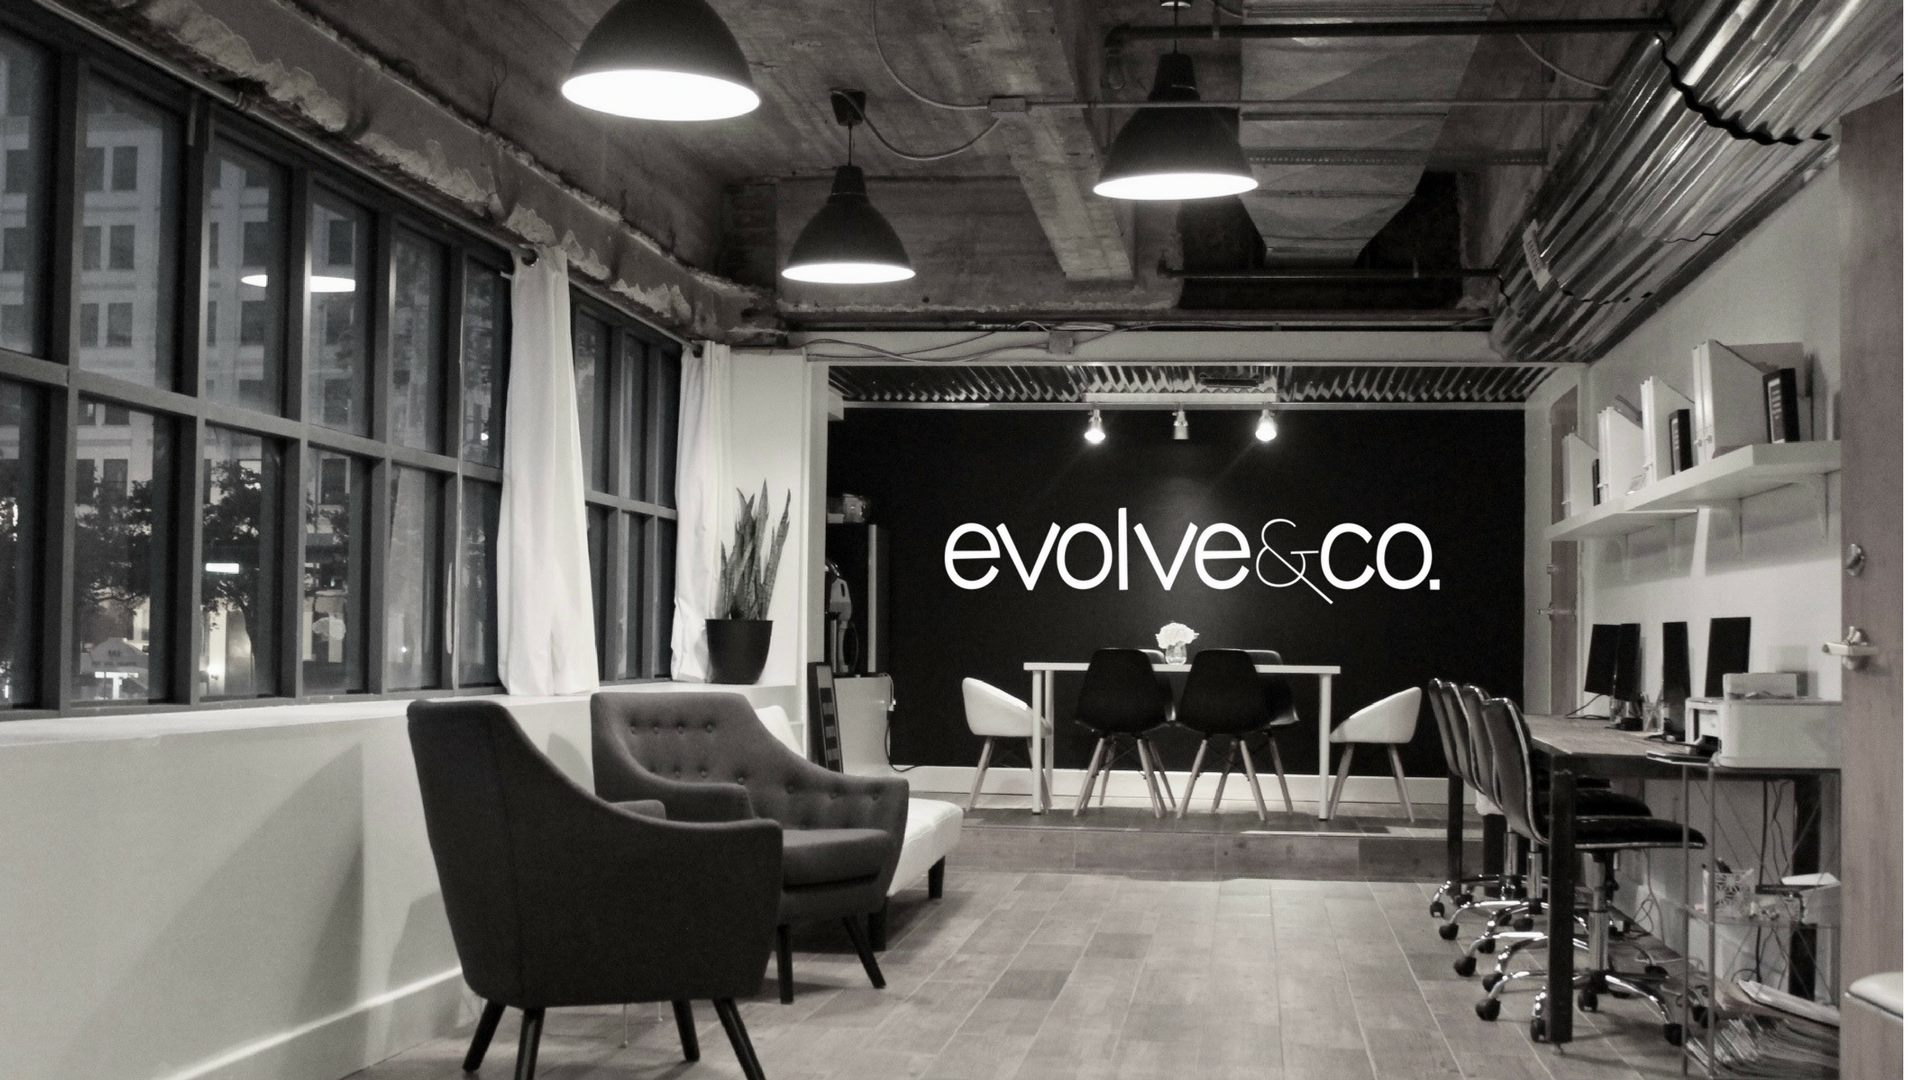 Evolve & Co Commissioned as Social Media Brand Voice for St. Pete's First Friday